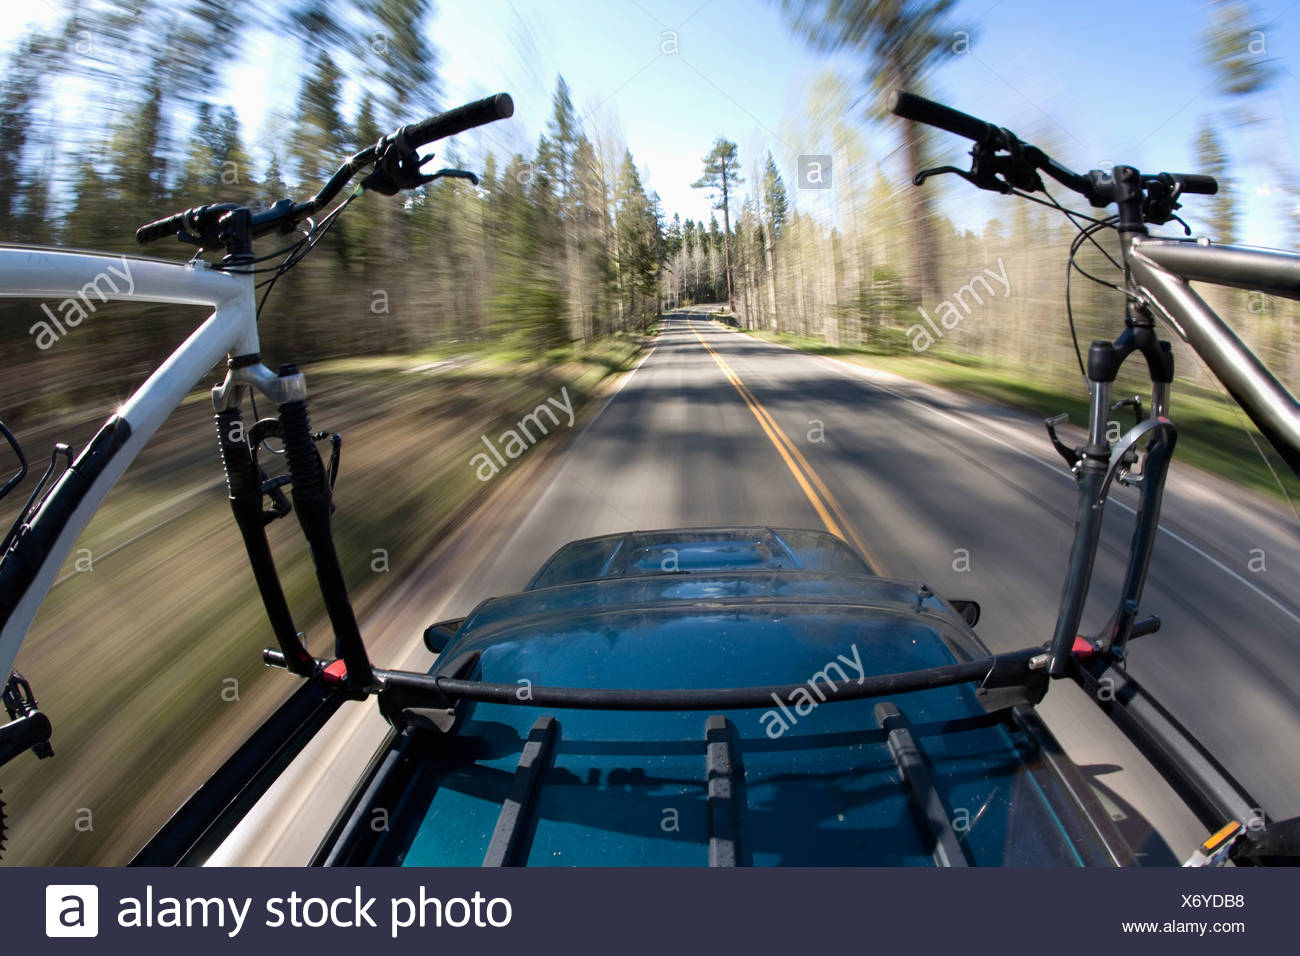 Blurred image of mountain bikes on a roof rack near Lake Tahoe, California. Stock Photo